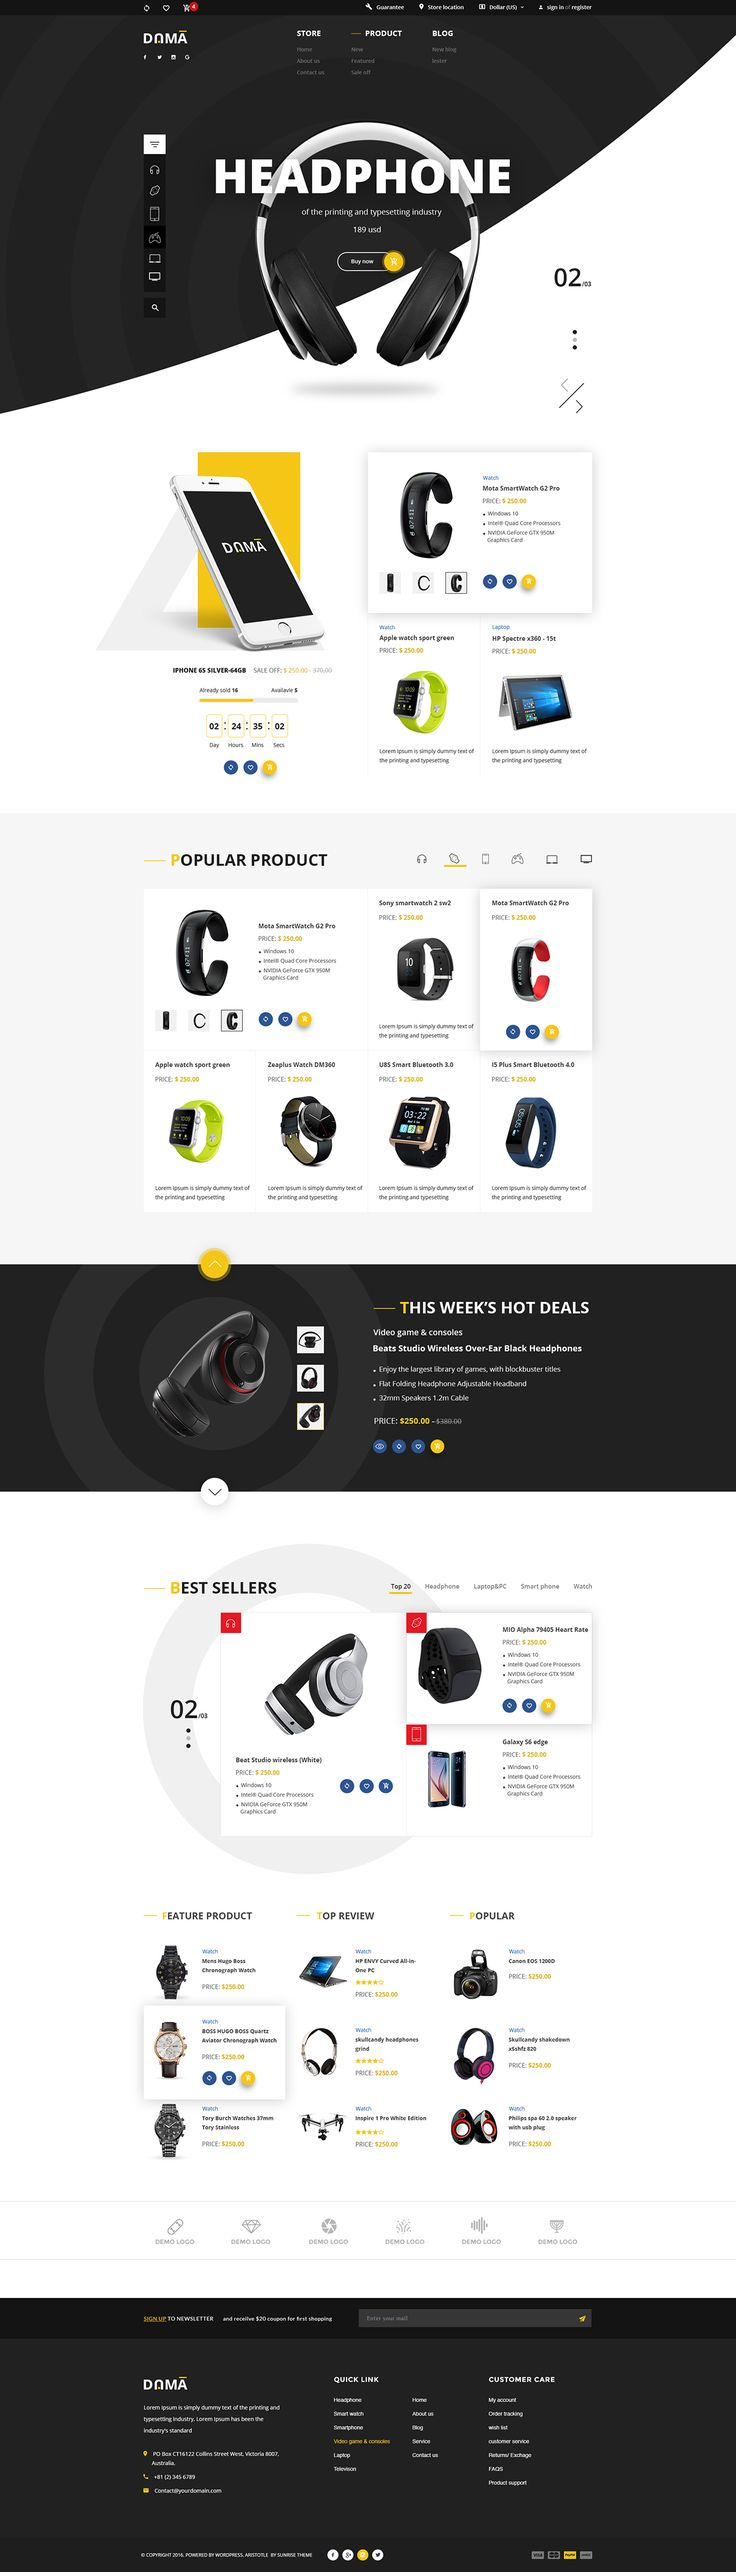 01 dama home 01 02 dama home 02 03 dama home 03DAMA is a minimalistic and extraordinary eCommerce website PSD template that we must call it 'the future of product design'. By adopting practices that elevate the customer experience and researching on the…